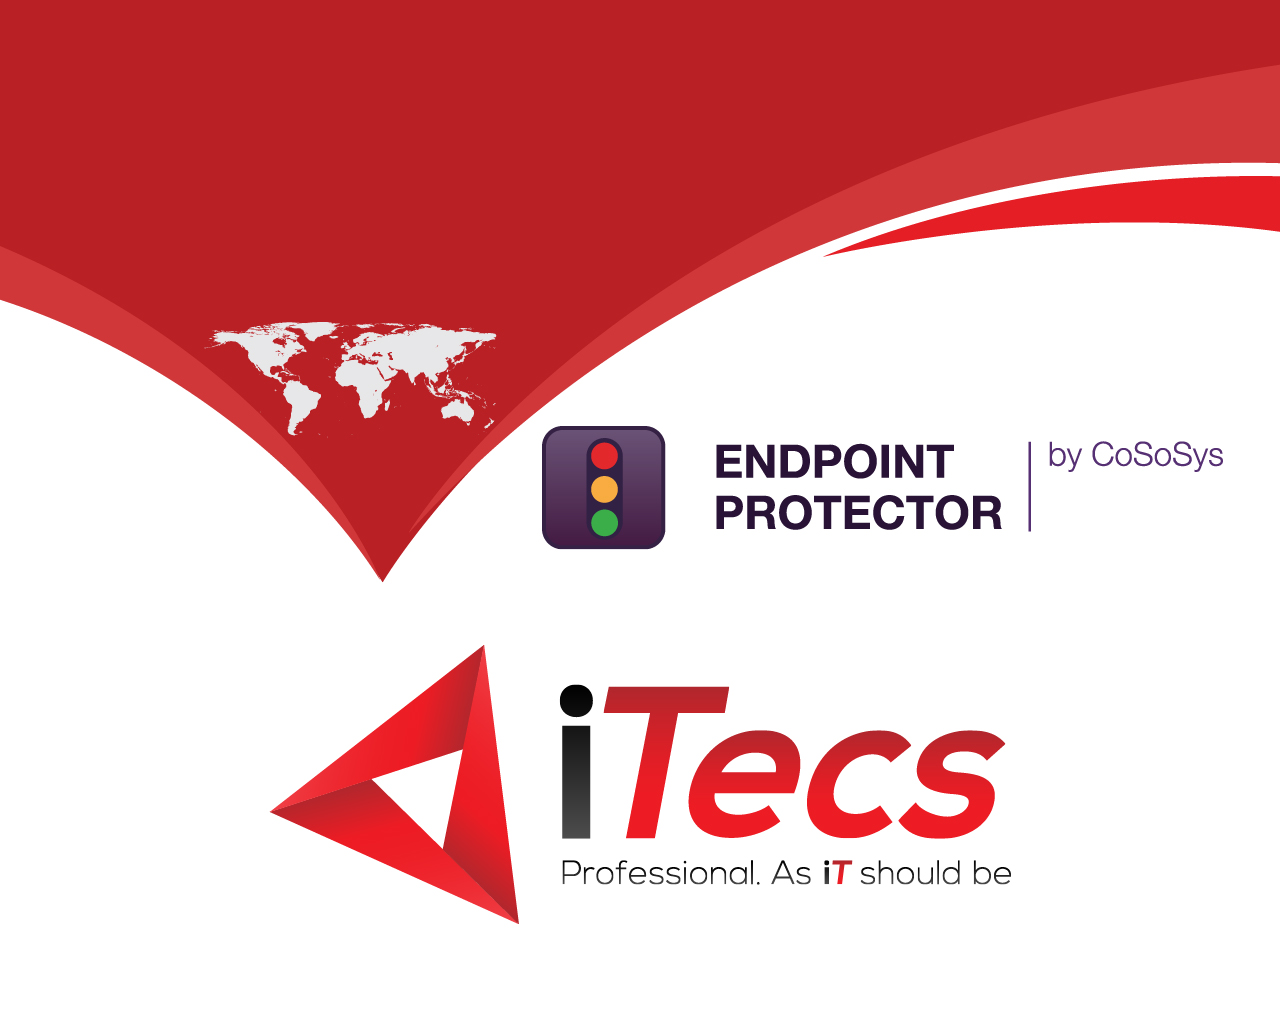 iTecs Outsourcing, LLC, an IT MSP, cloud hosting, and cybersecurity firm based out of Dallas that works with companies across the United States, has officially entered into a reseller partnership with CoSoSys, an IT security company that developed the Endpoint Protector software suite.